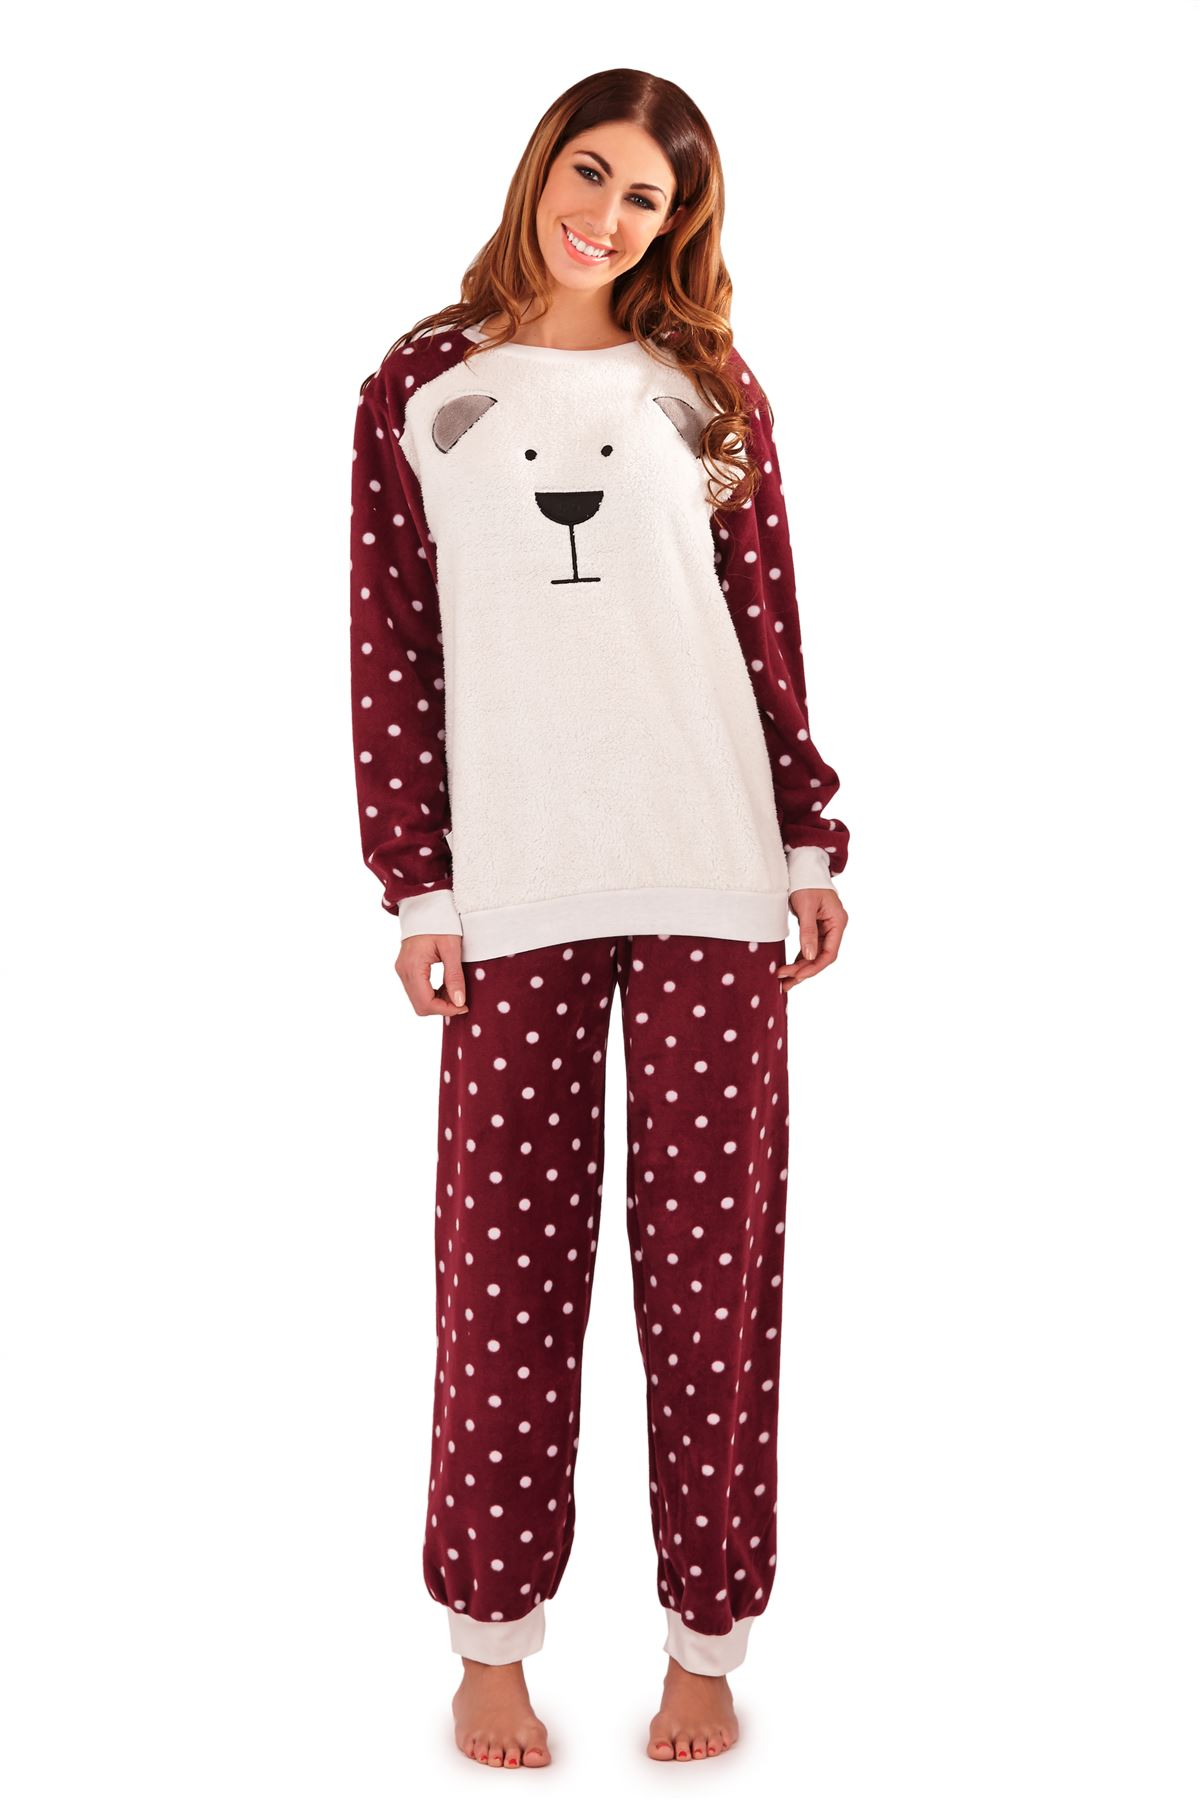 femmes de luxe polaire pyjama set pyjama chaud pour femme manches longues cadeau nightwear ebay. Black Bedroom Furniture Sets. Home Design Ideas